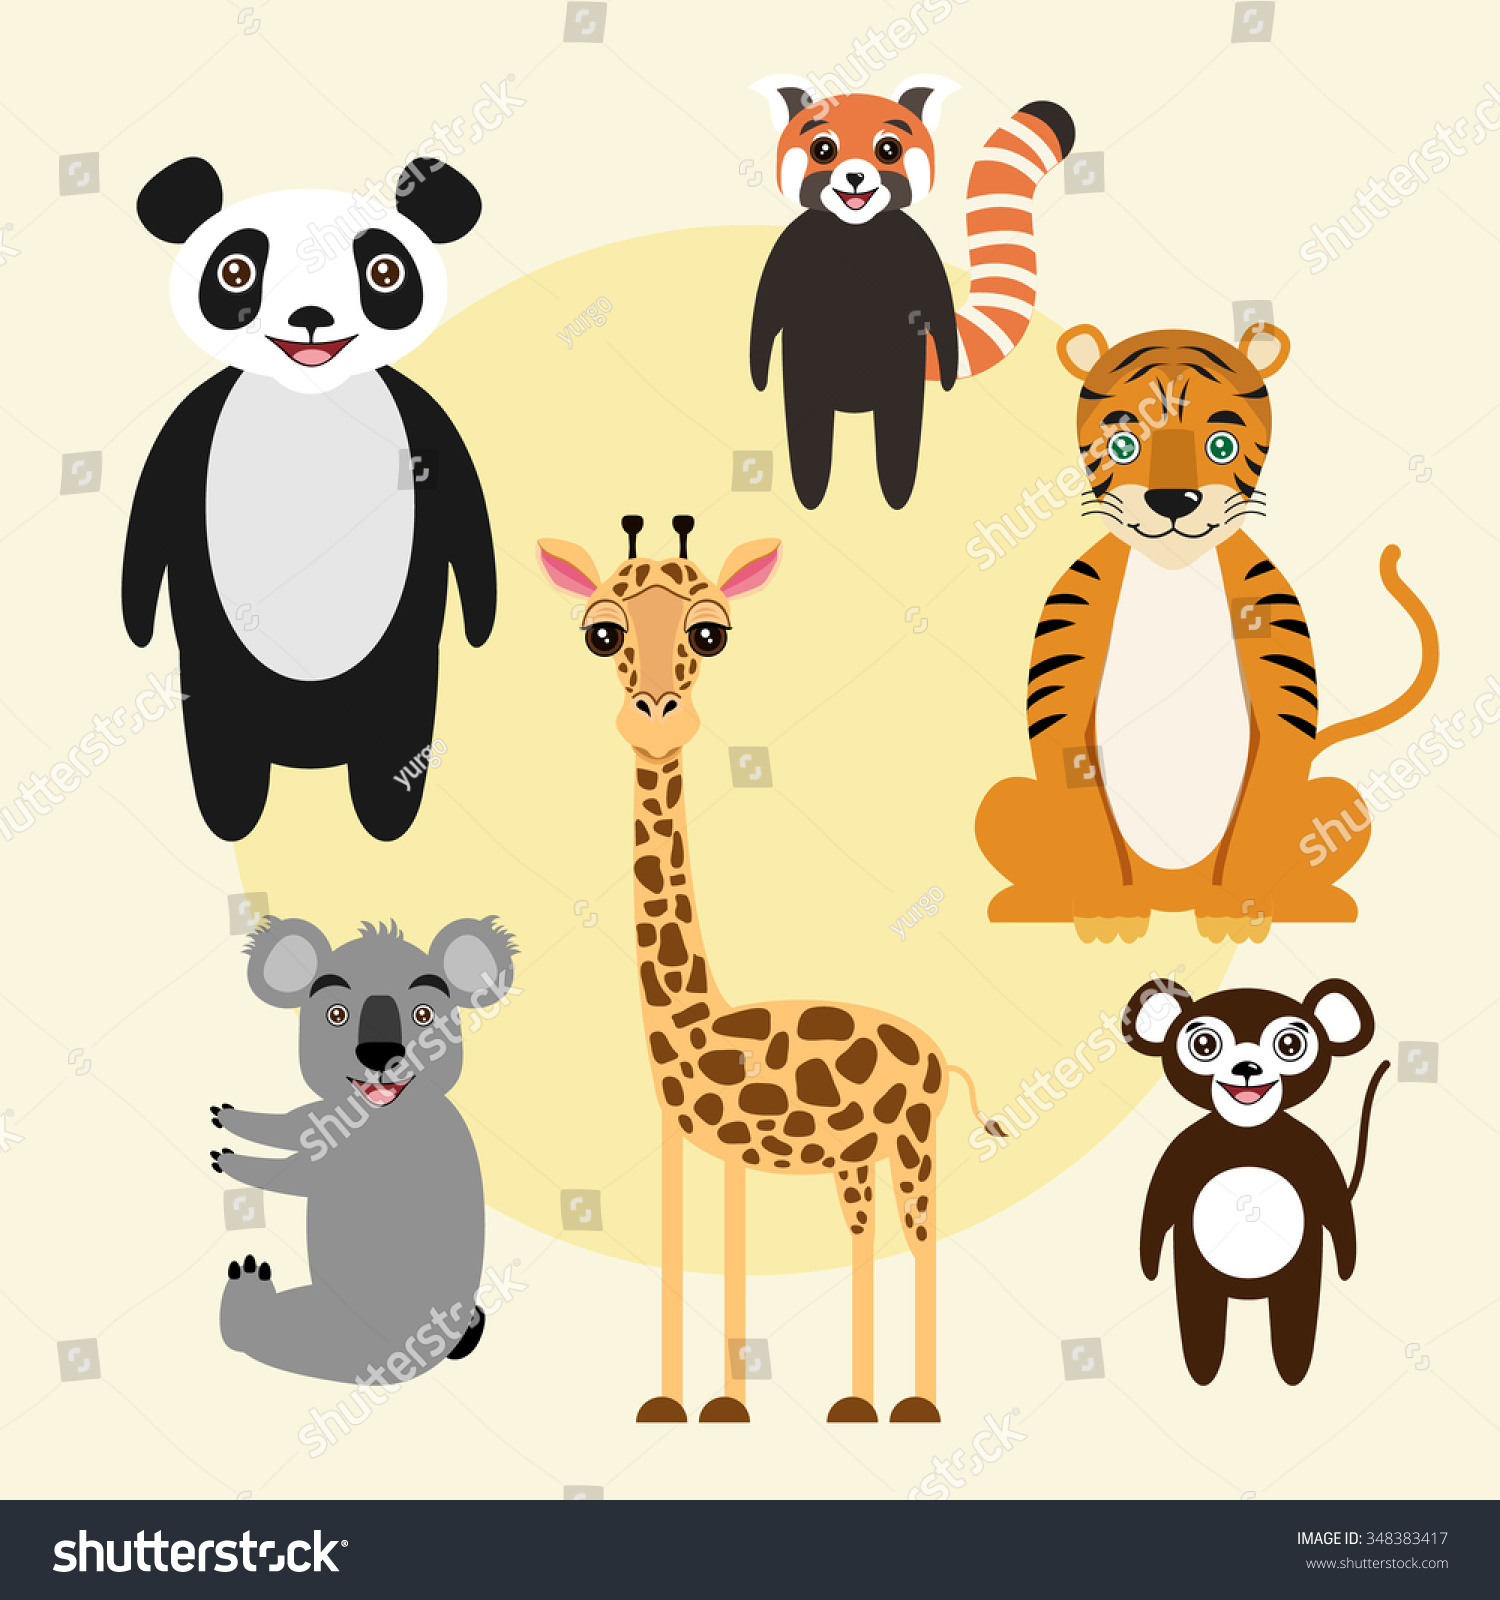 2083 Best Images About Puppetry: Royalty-free Set Of Vector Animals. Children Cartoon